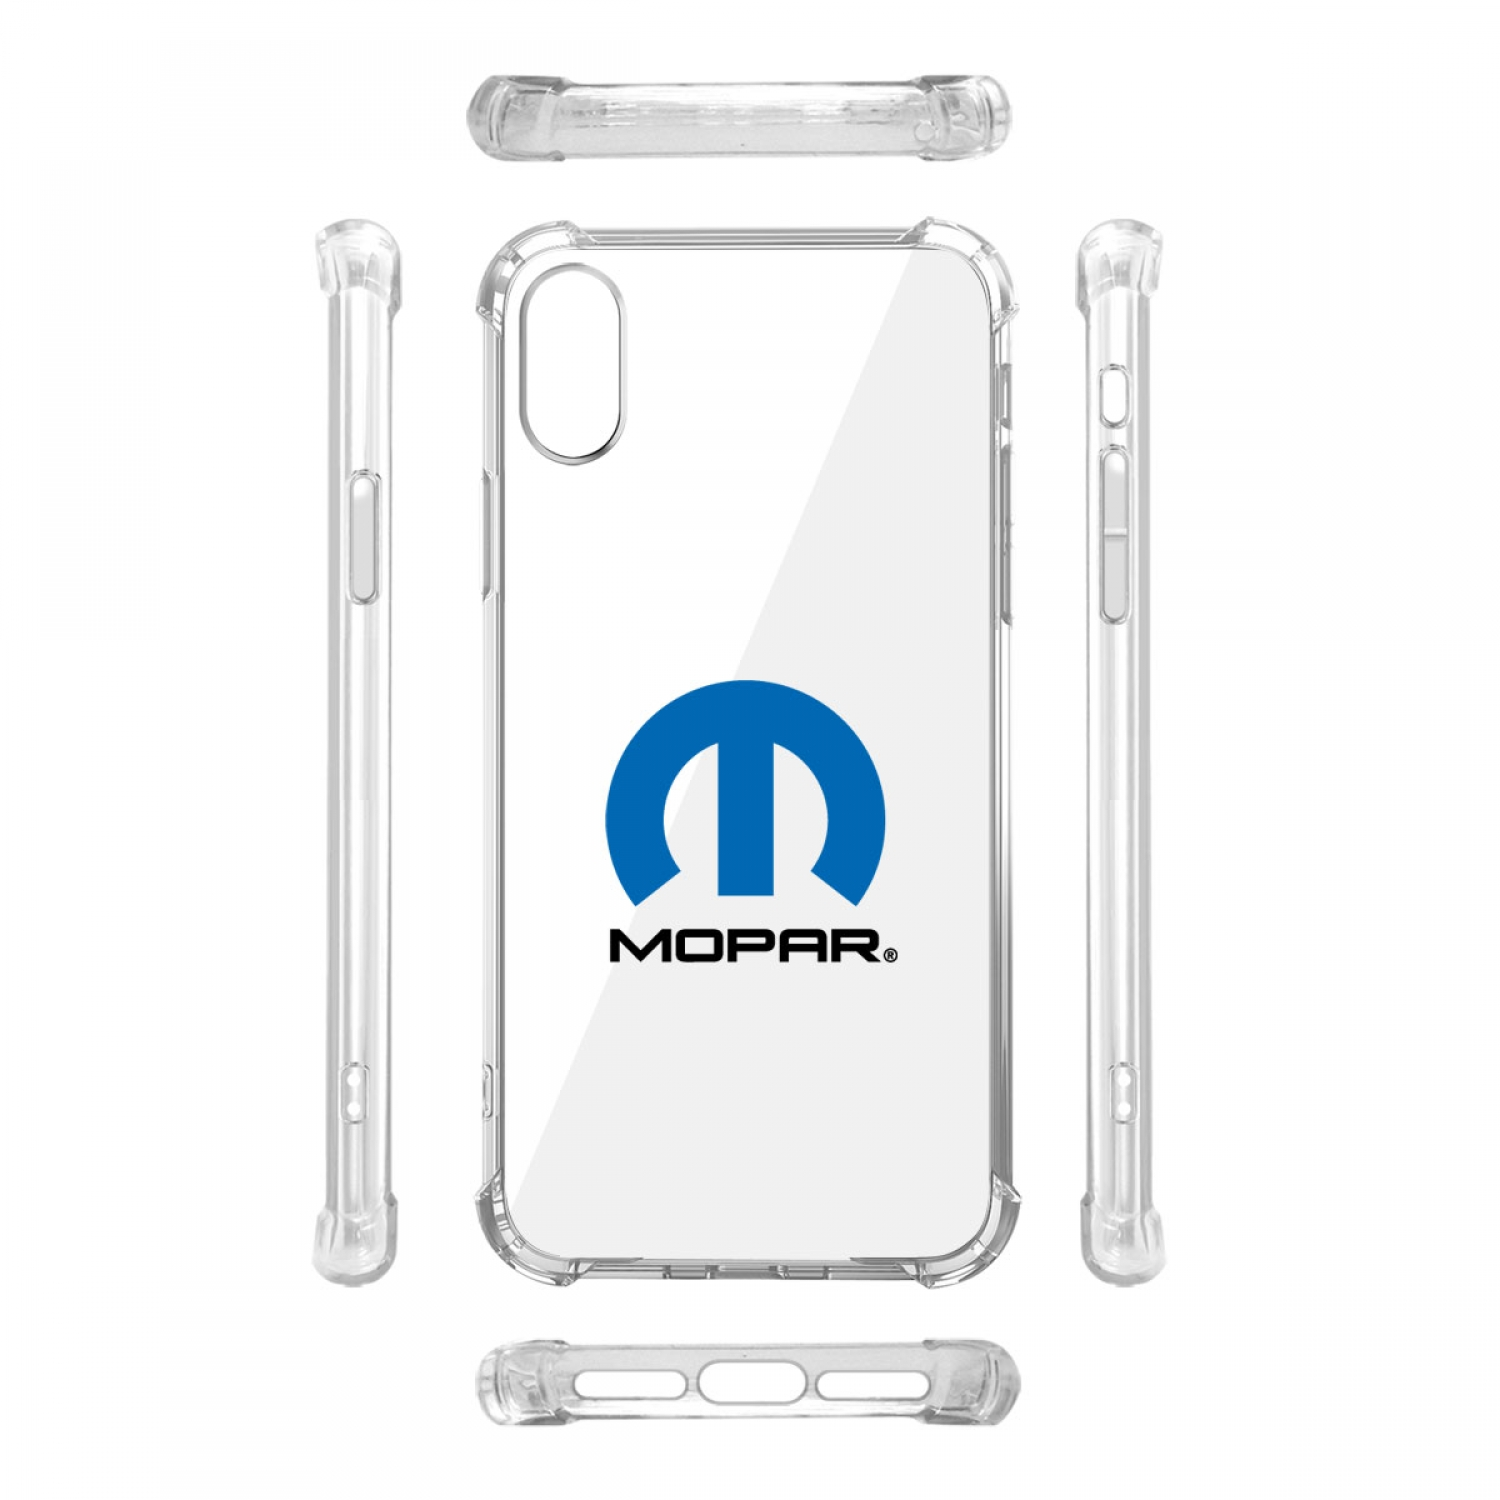 MOPAR Logo iPhone X Clear TPU Shockproof Cell Phone Case